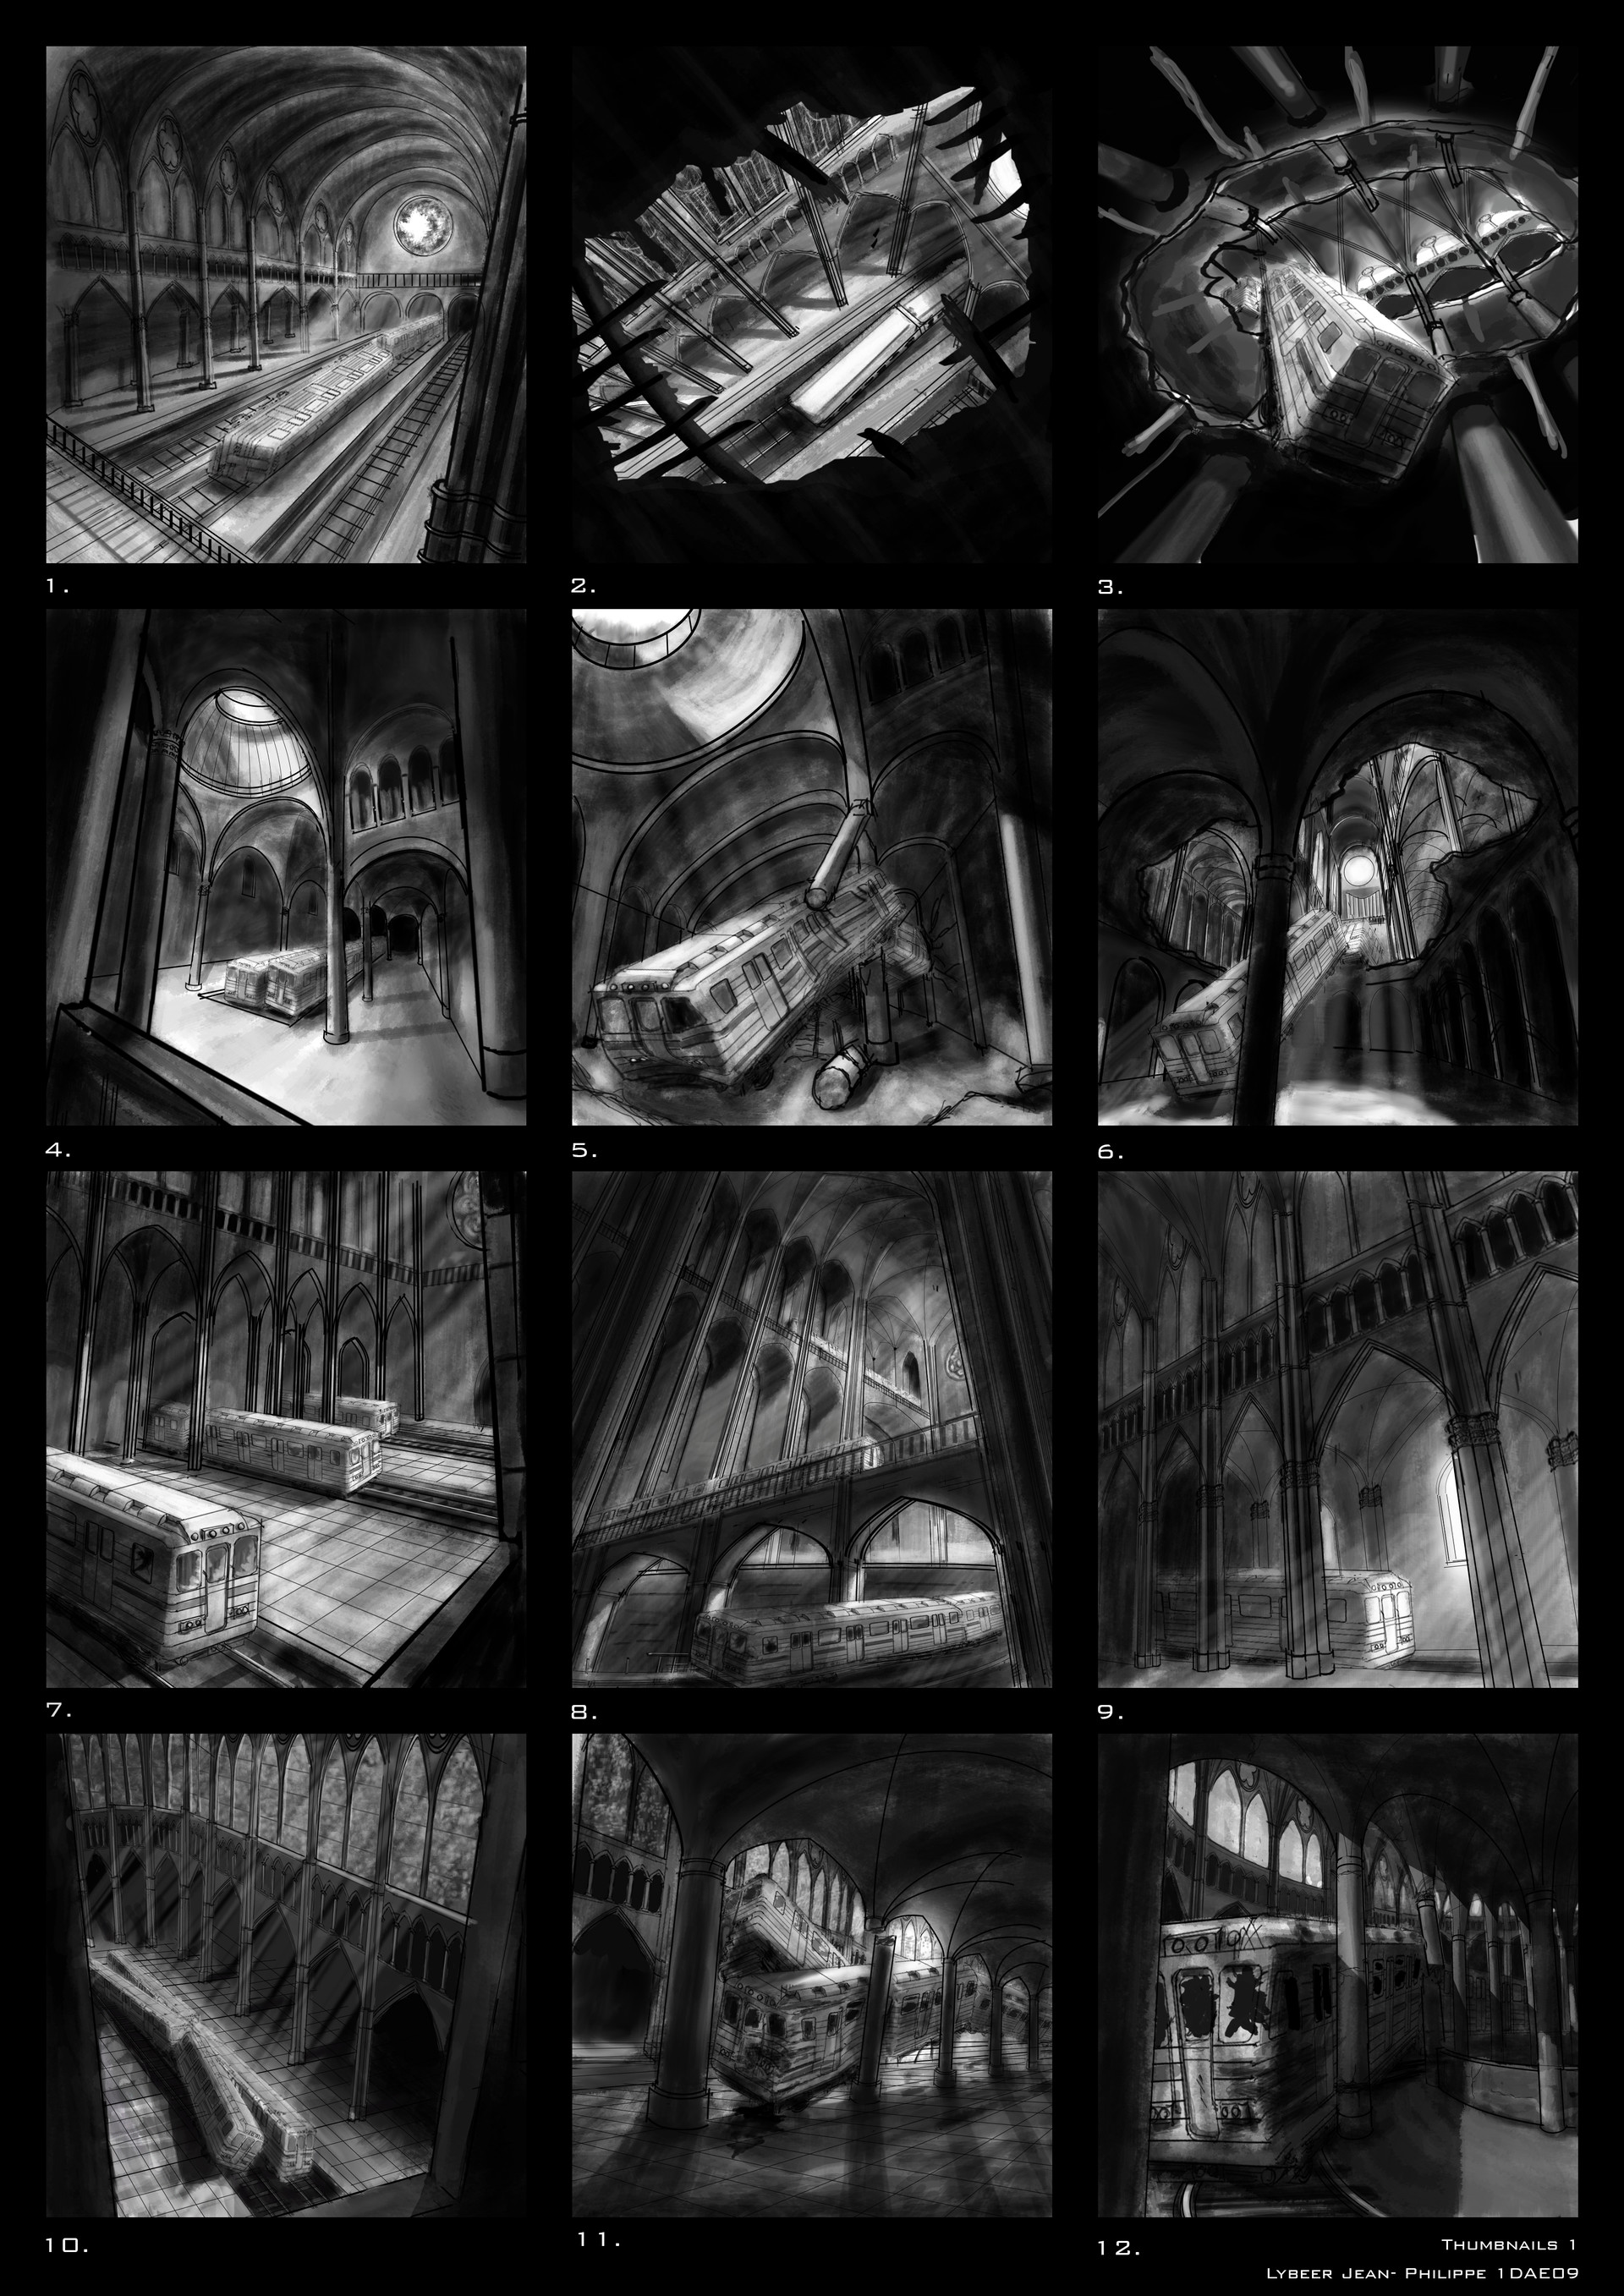 Jean philippe lybeer lybeer jean philippe 1dae09 03 01thumbnails1